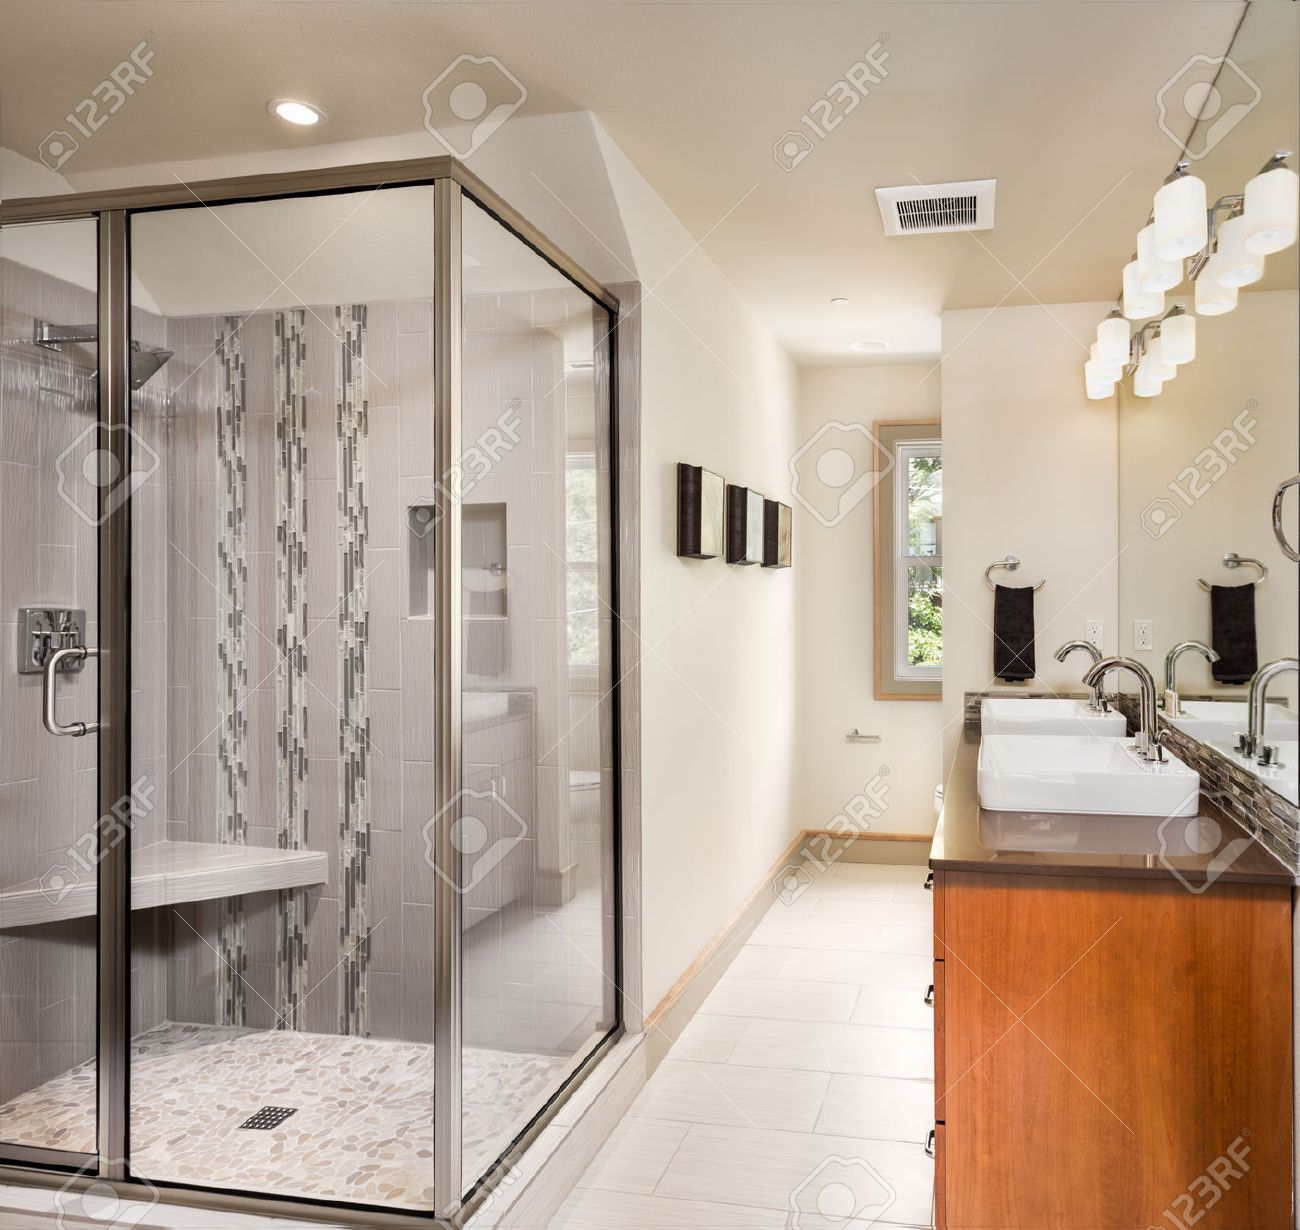 Bathroom interior in luxury home with two sinks tile floor and shower stock photo